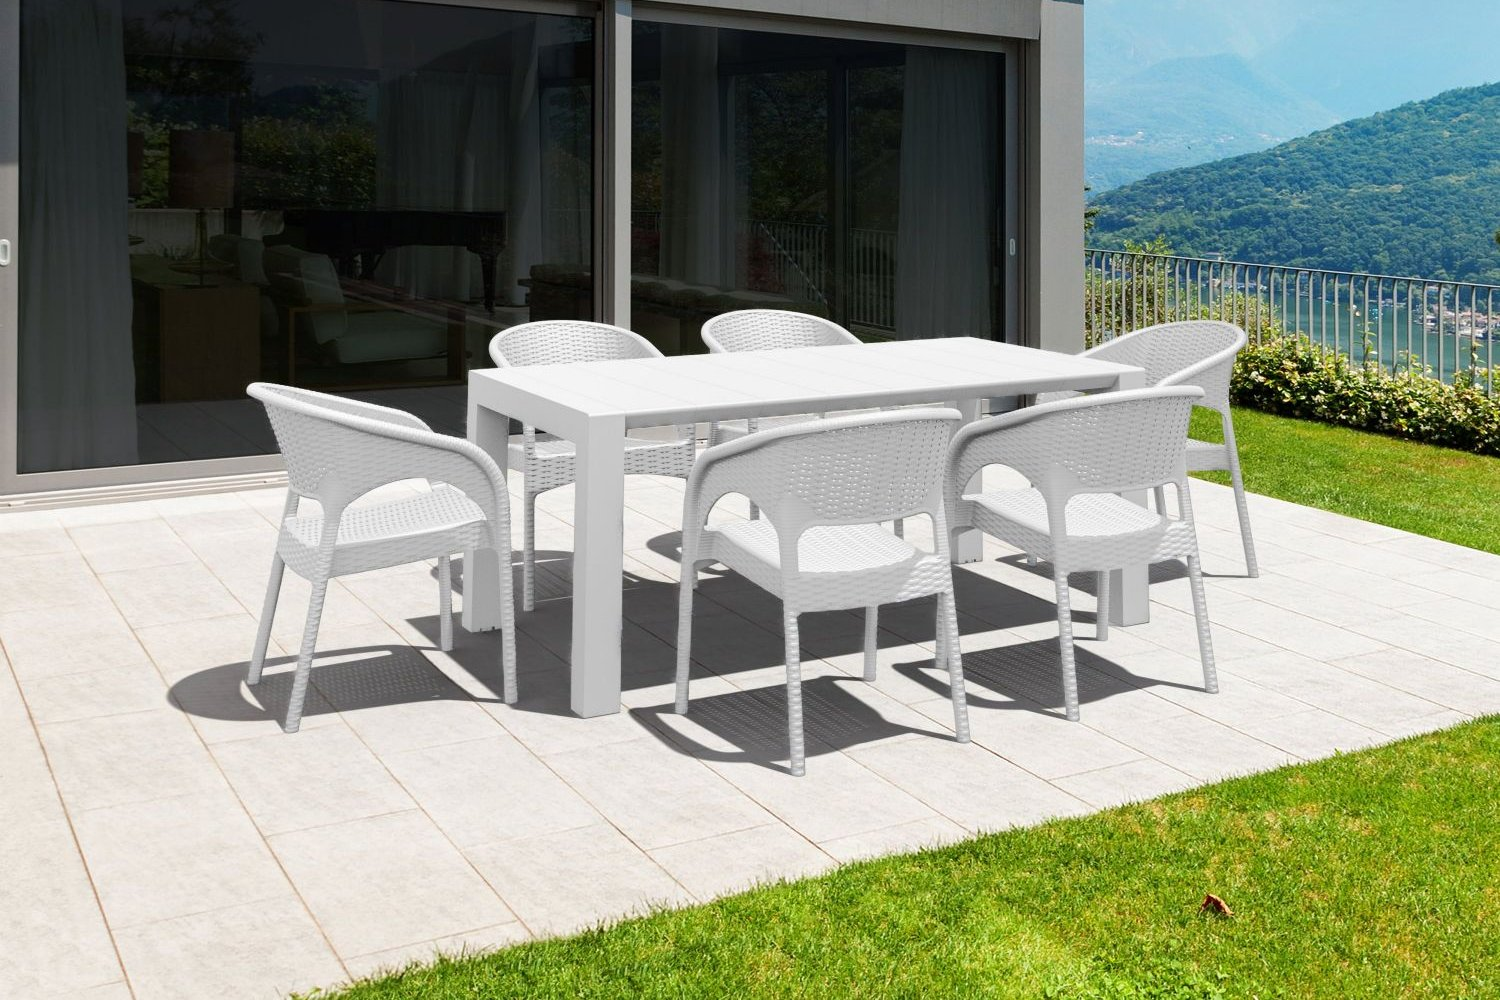 Panama Extendable Patio Dining Set 7 piece White ISP8082S-WH - 3